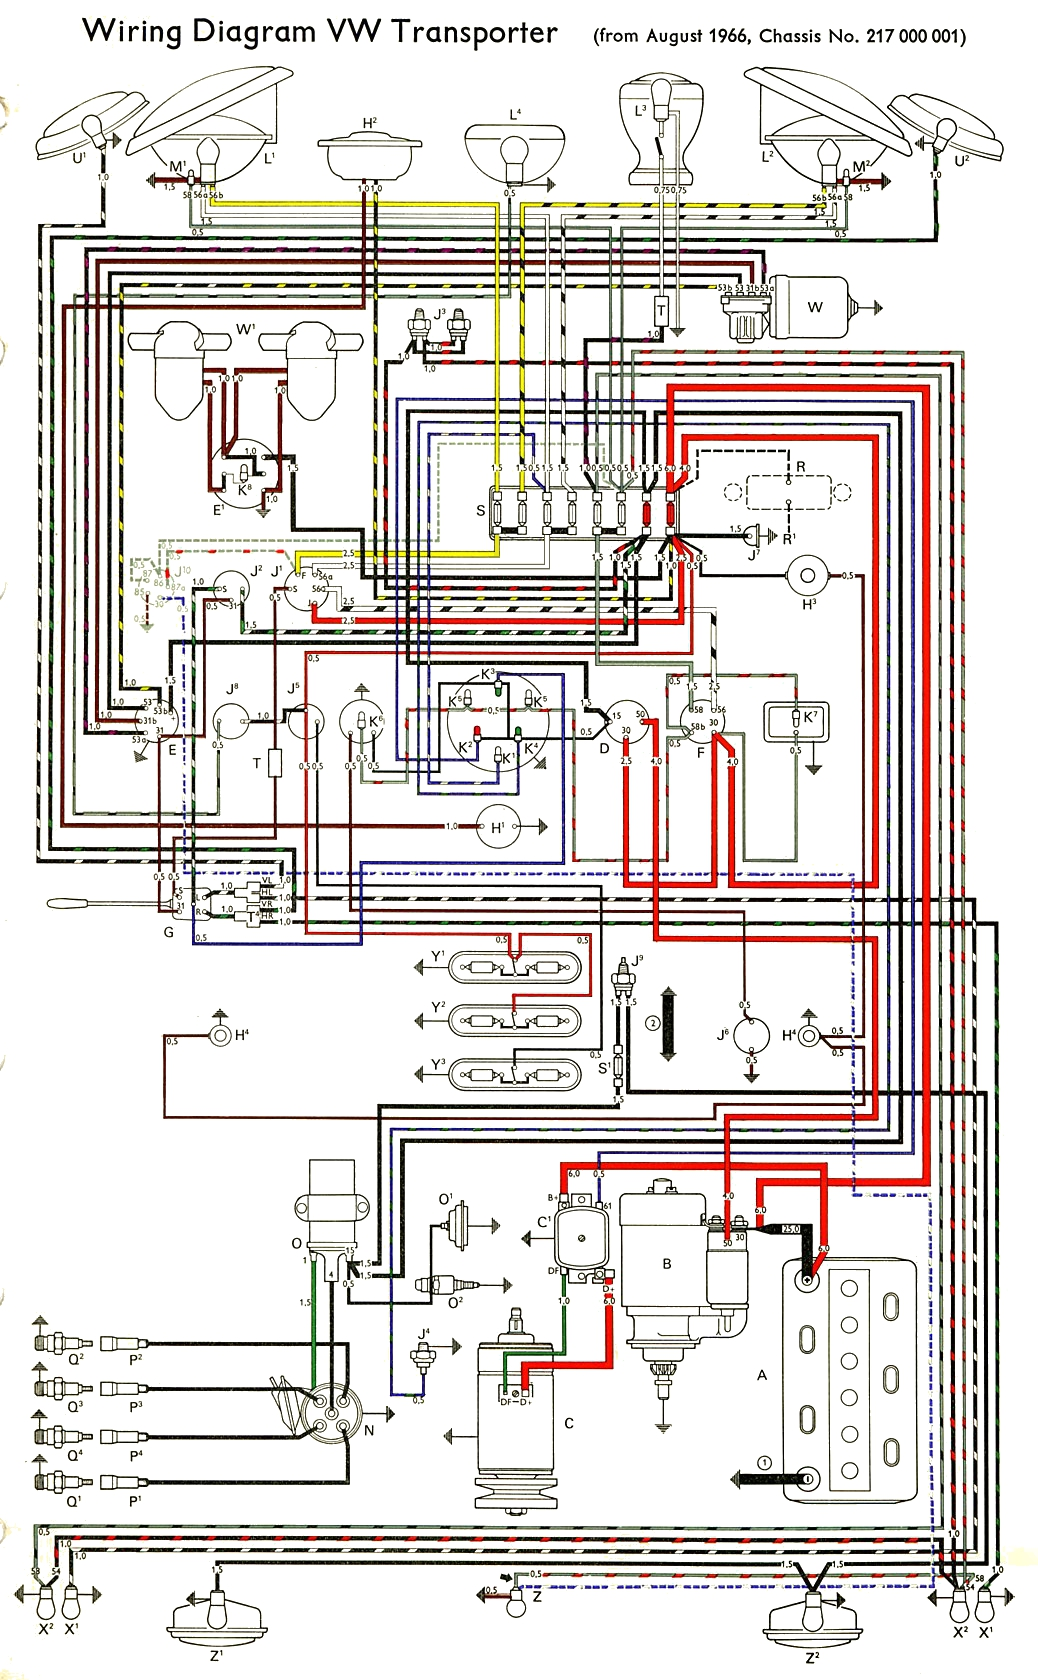 vw bus 1966 wiring diagram data wiring diagrams \u2022 1973 volkswagen beetle chassis wiring diagram thesamba com type 2 wiring diagrams rh thesamba com 69 vw wiring diagram 68 vw wiring diagram